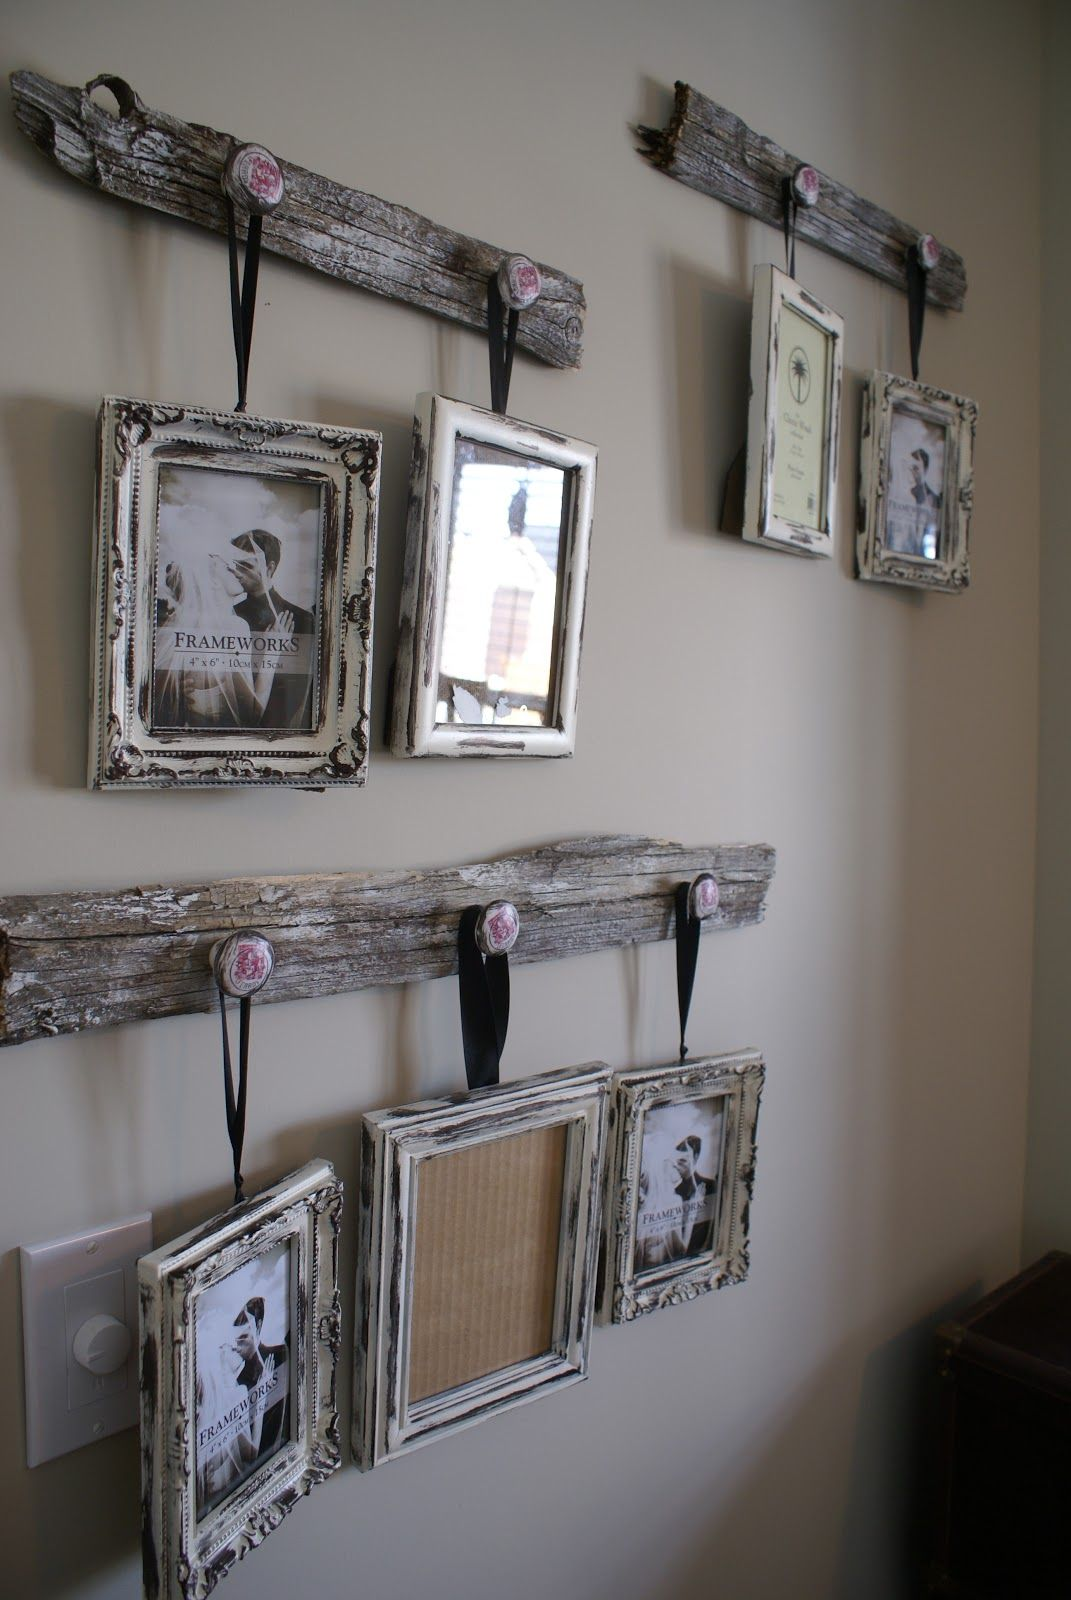 Antique Drawer Pull Picture Frame Hangers Rustic Living Room Decor Country Wall